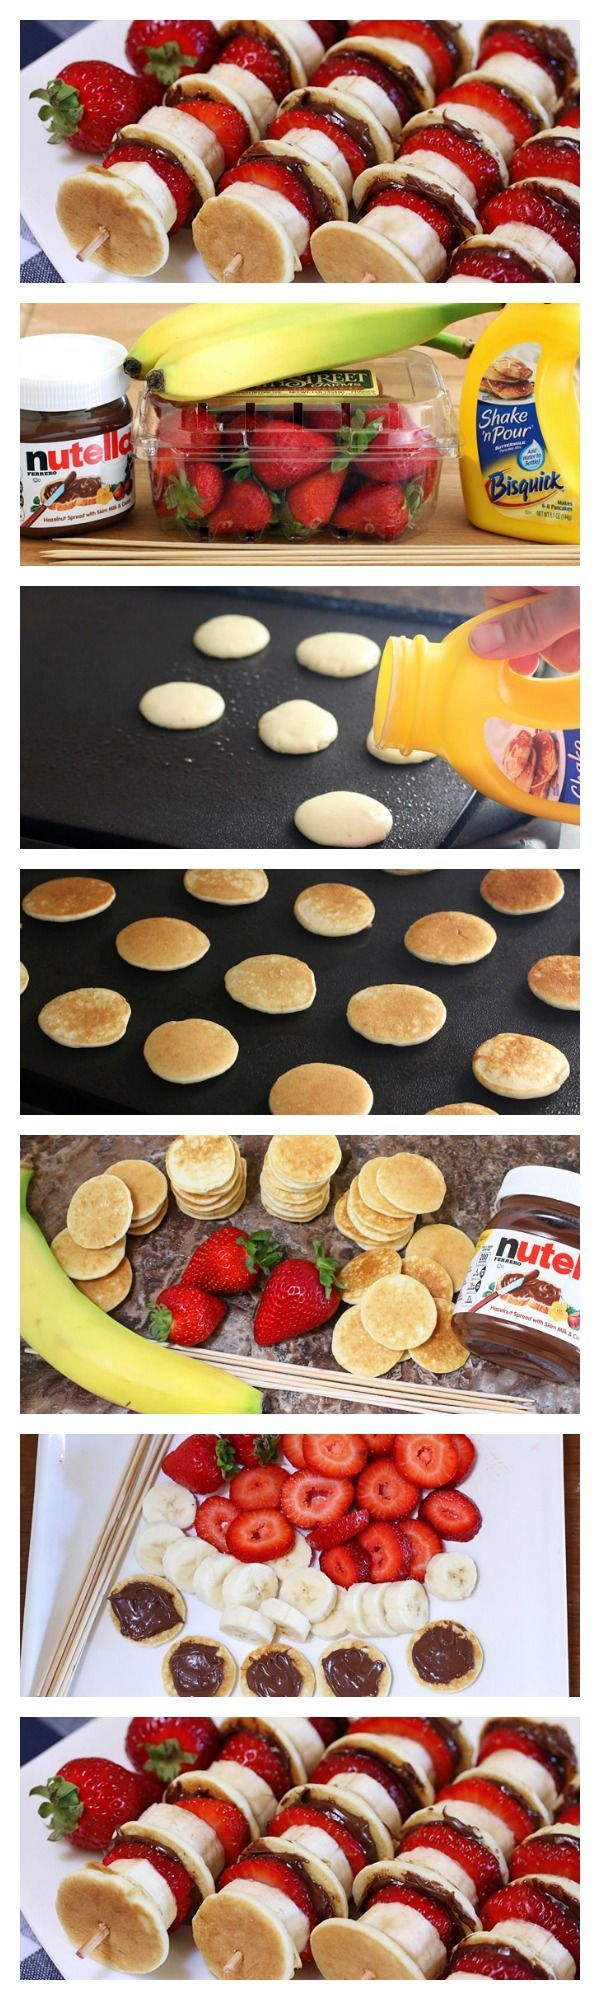 Nutella Pancake Kabobs Pictures, Photos, and Images for Facebook ...